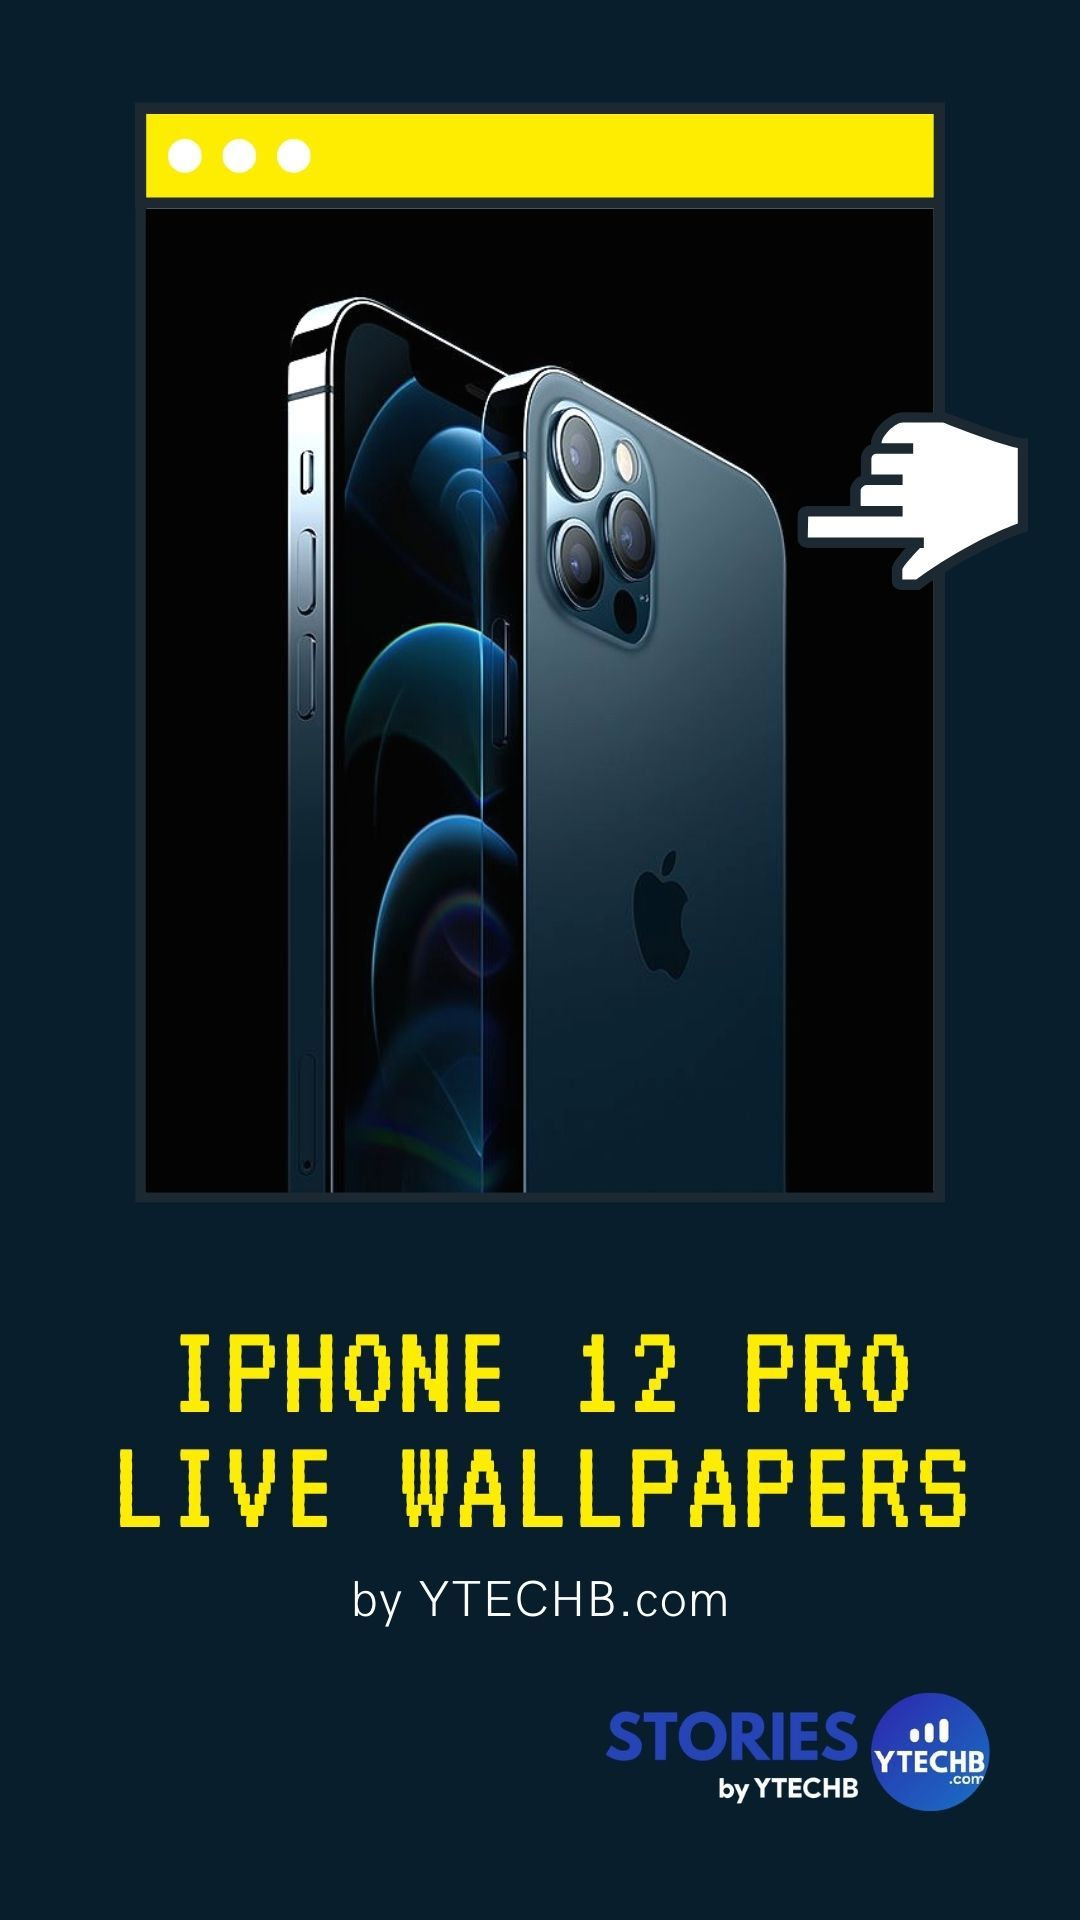 Download Iphone 12 Pro Live Wallpapers 4k Free Apple Wallpaper Iphone Live Wallpapers Joker Iphone Wallpaper